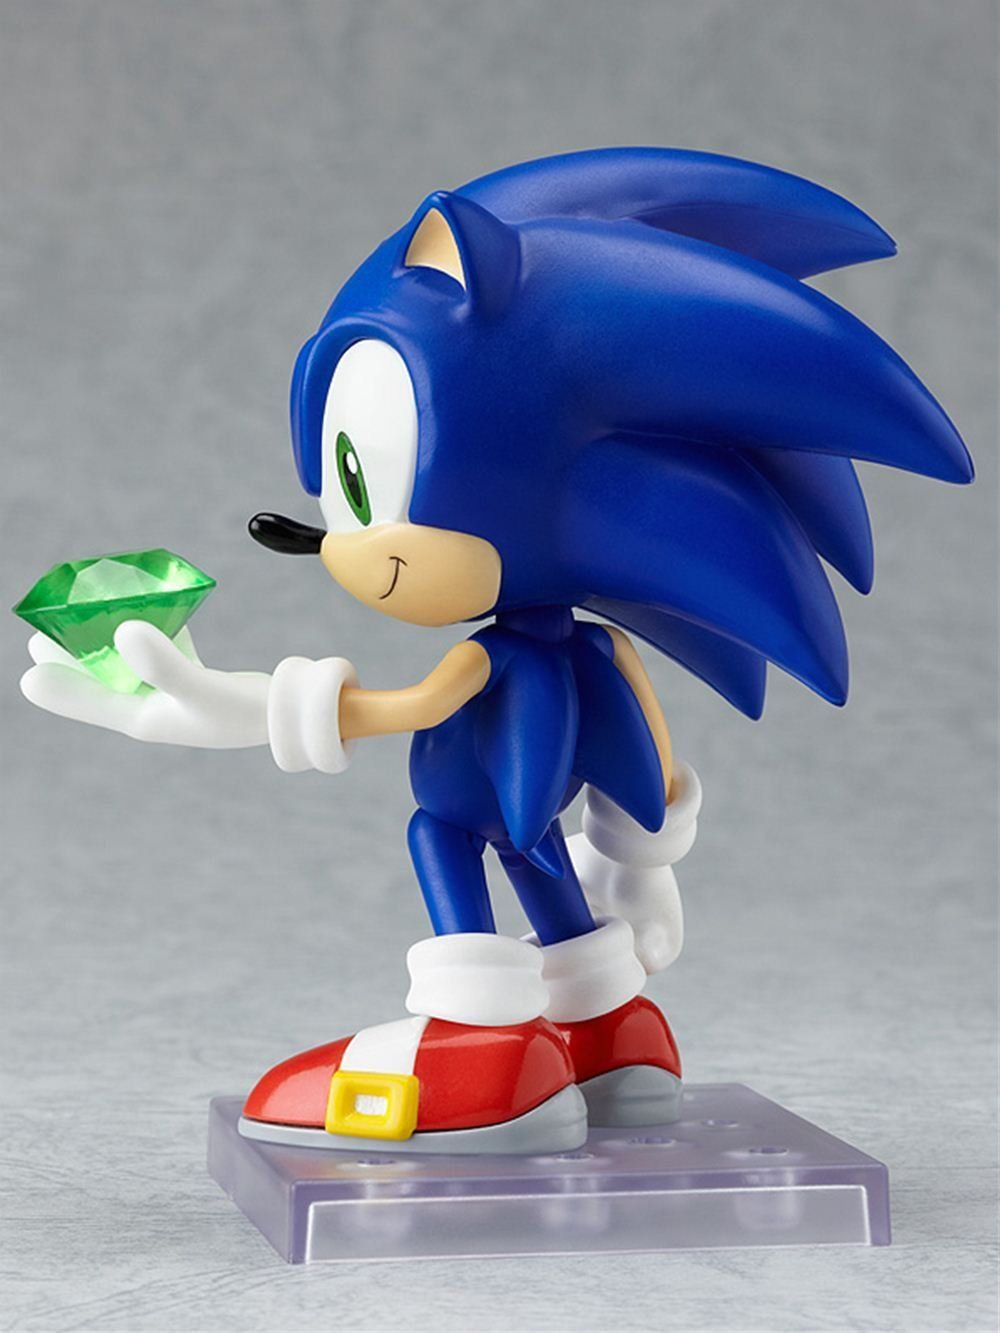 Sonic the Hedgehog Nendoroid 4 Inch Poseable